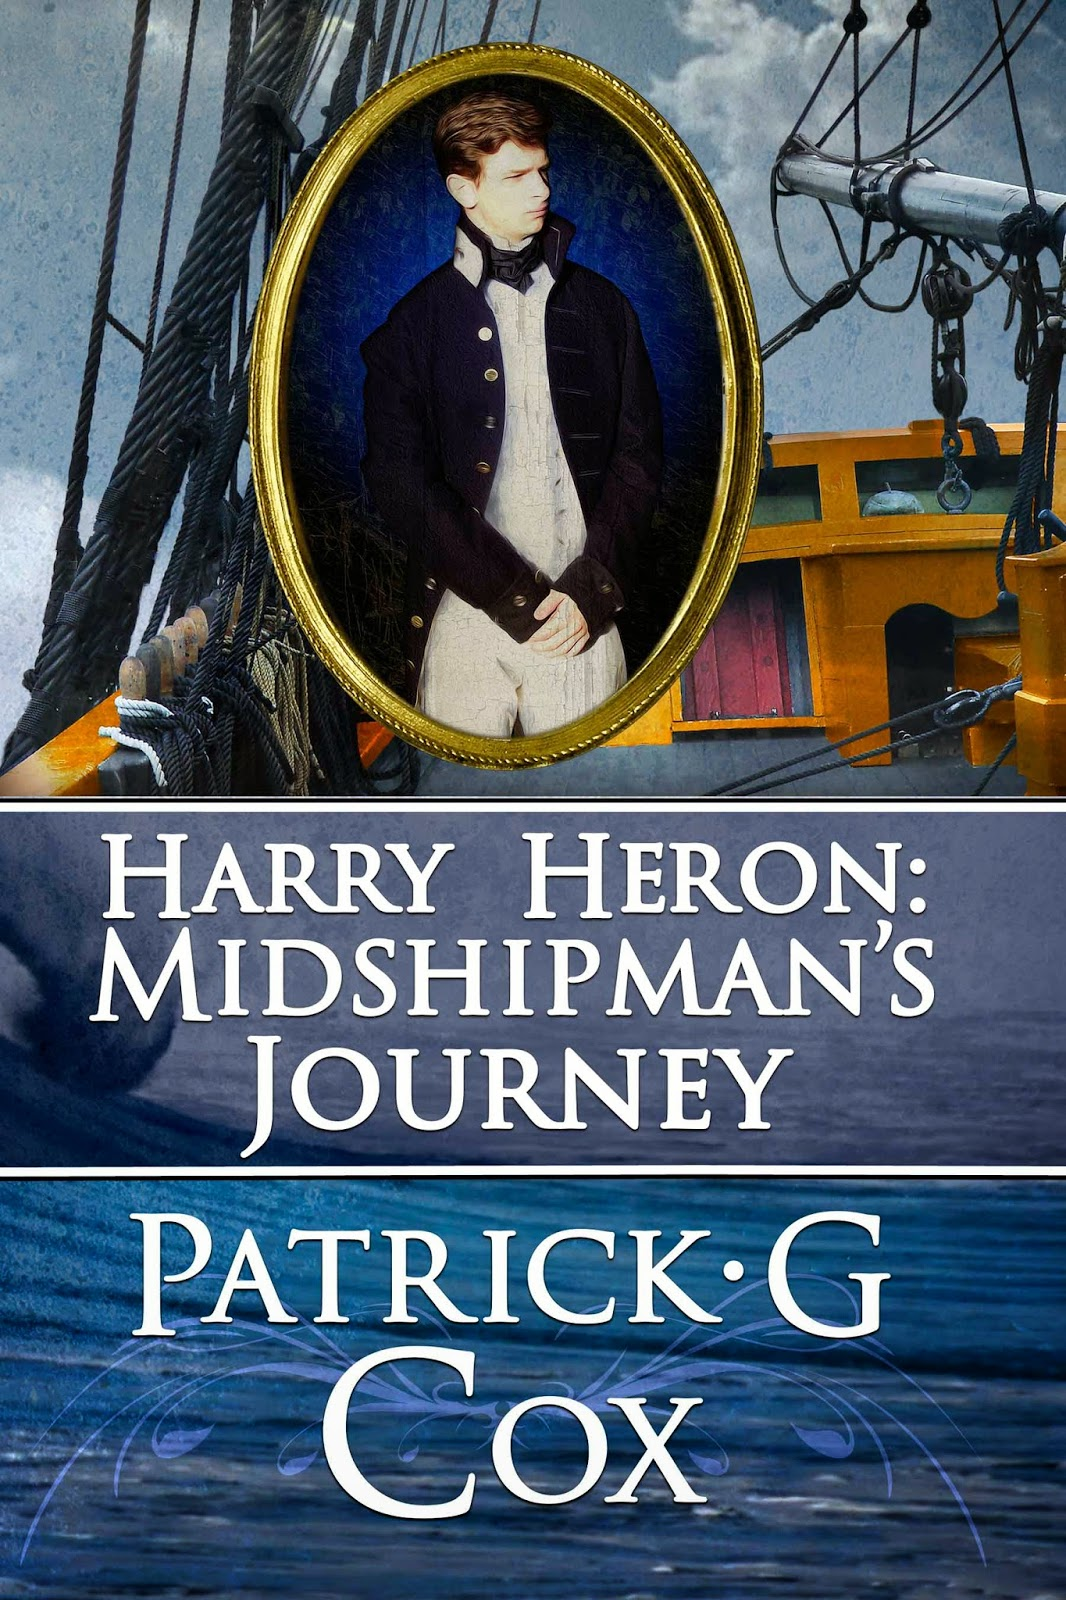 """Harry Heron: Midshipman's Journey"" author: Partick G Cox, cover designer: Kura Carpenter"